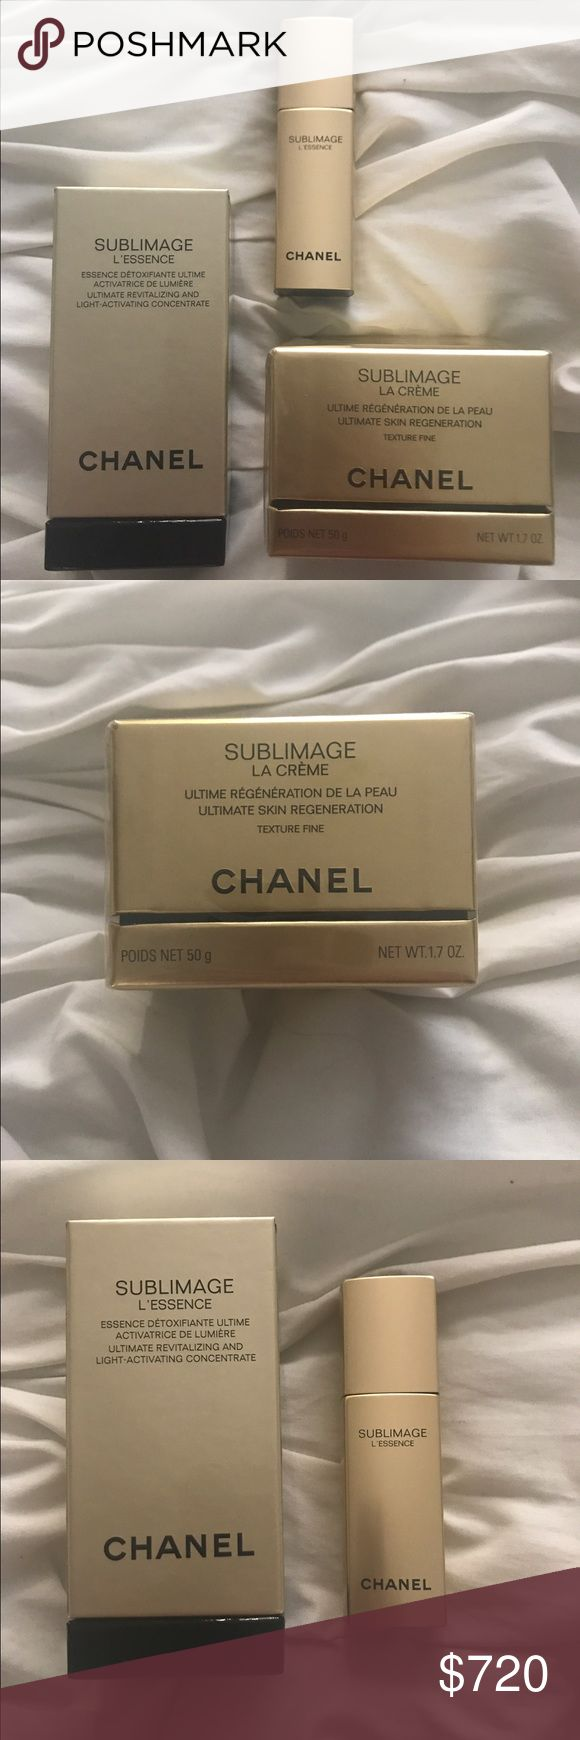 Chanel Sublimage La Creme and Sublimage L'essence Selling never used and never opened both Chanel Sublimage La Creme (moisturizer) and Sublimage L'essence (concentrate) together. These products should be used together (first the L'essence then the la Creme). CHANEL Makeup